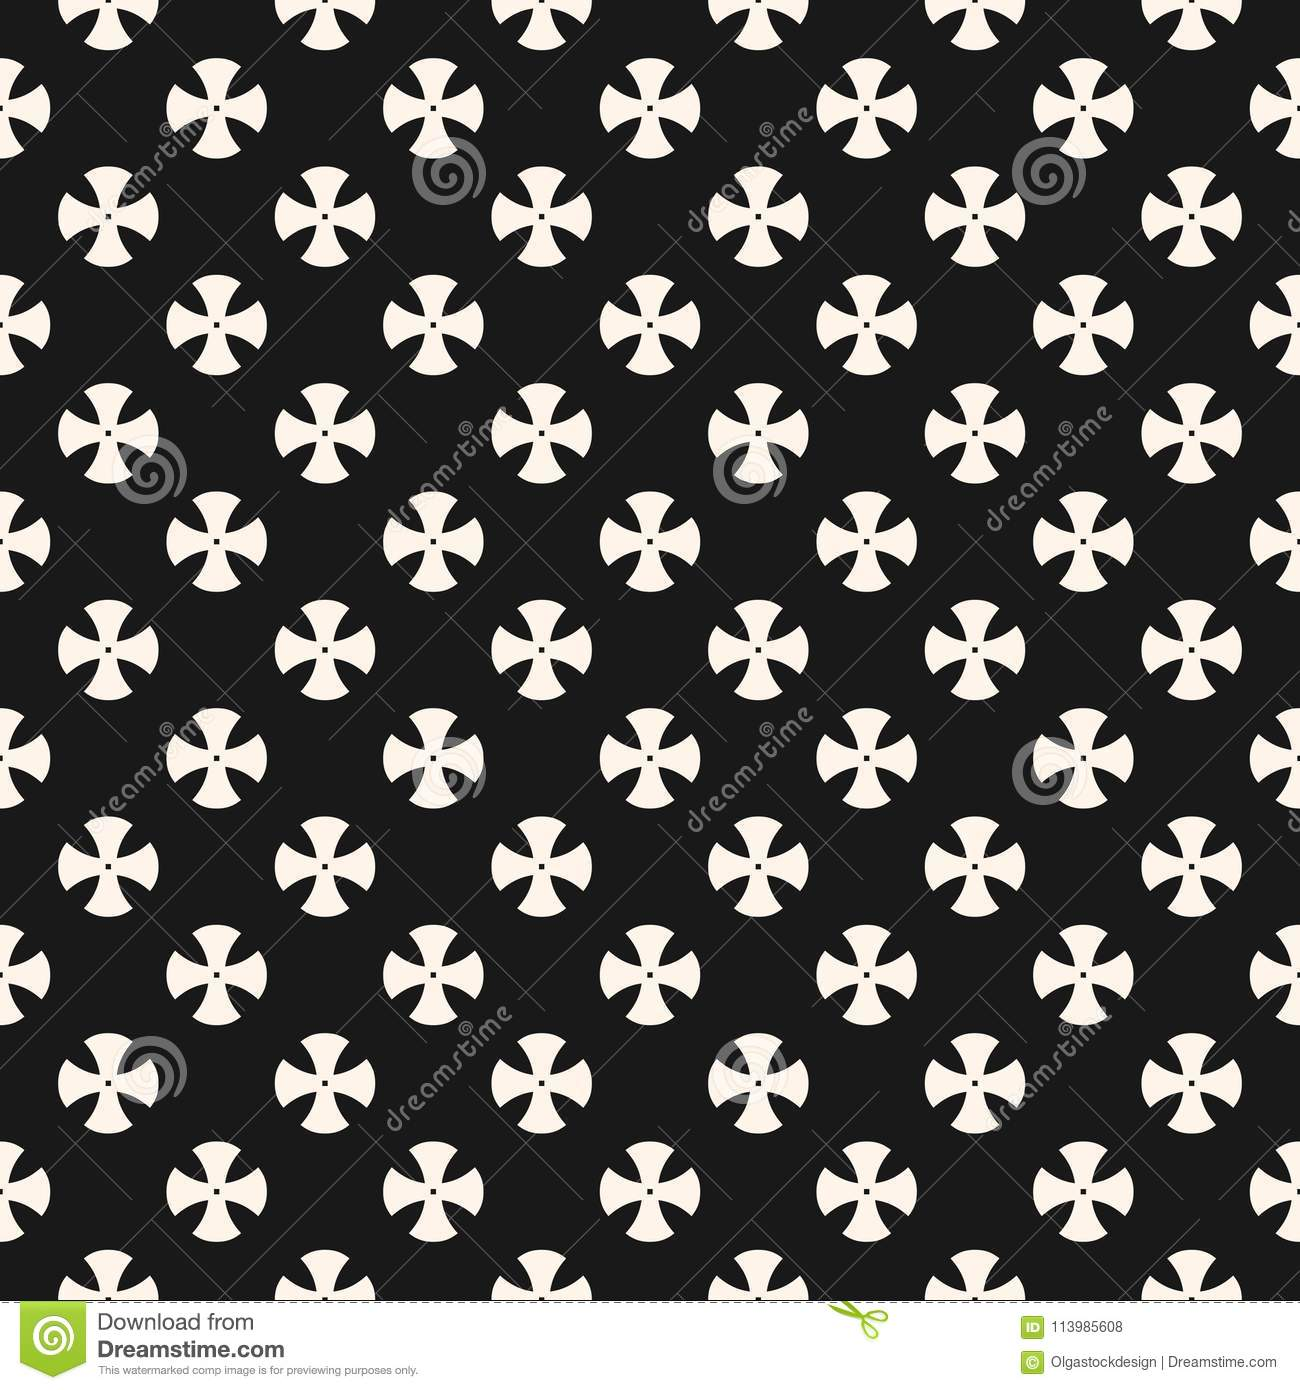 Download Simple Floral Pattern Black And White Repeat Design For Textile Decor Fabric